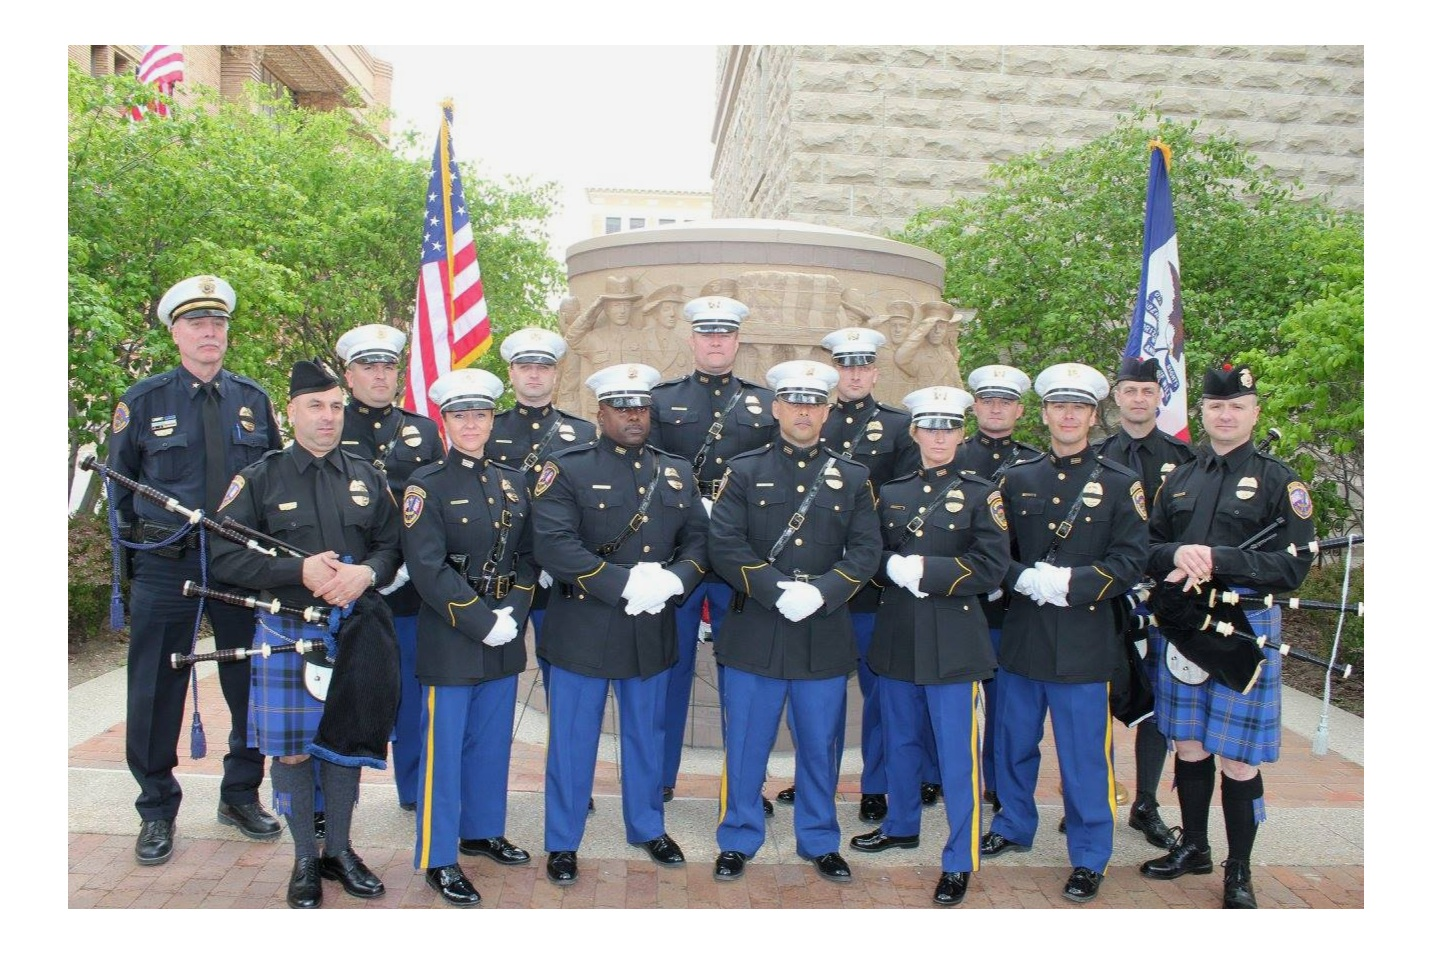 Copy of Honor Guard and Bagpipers